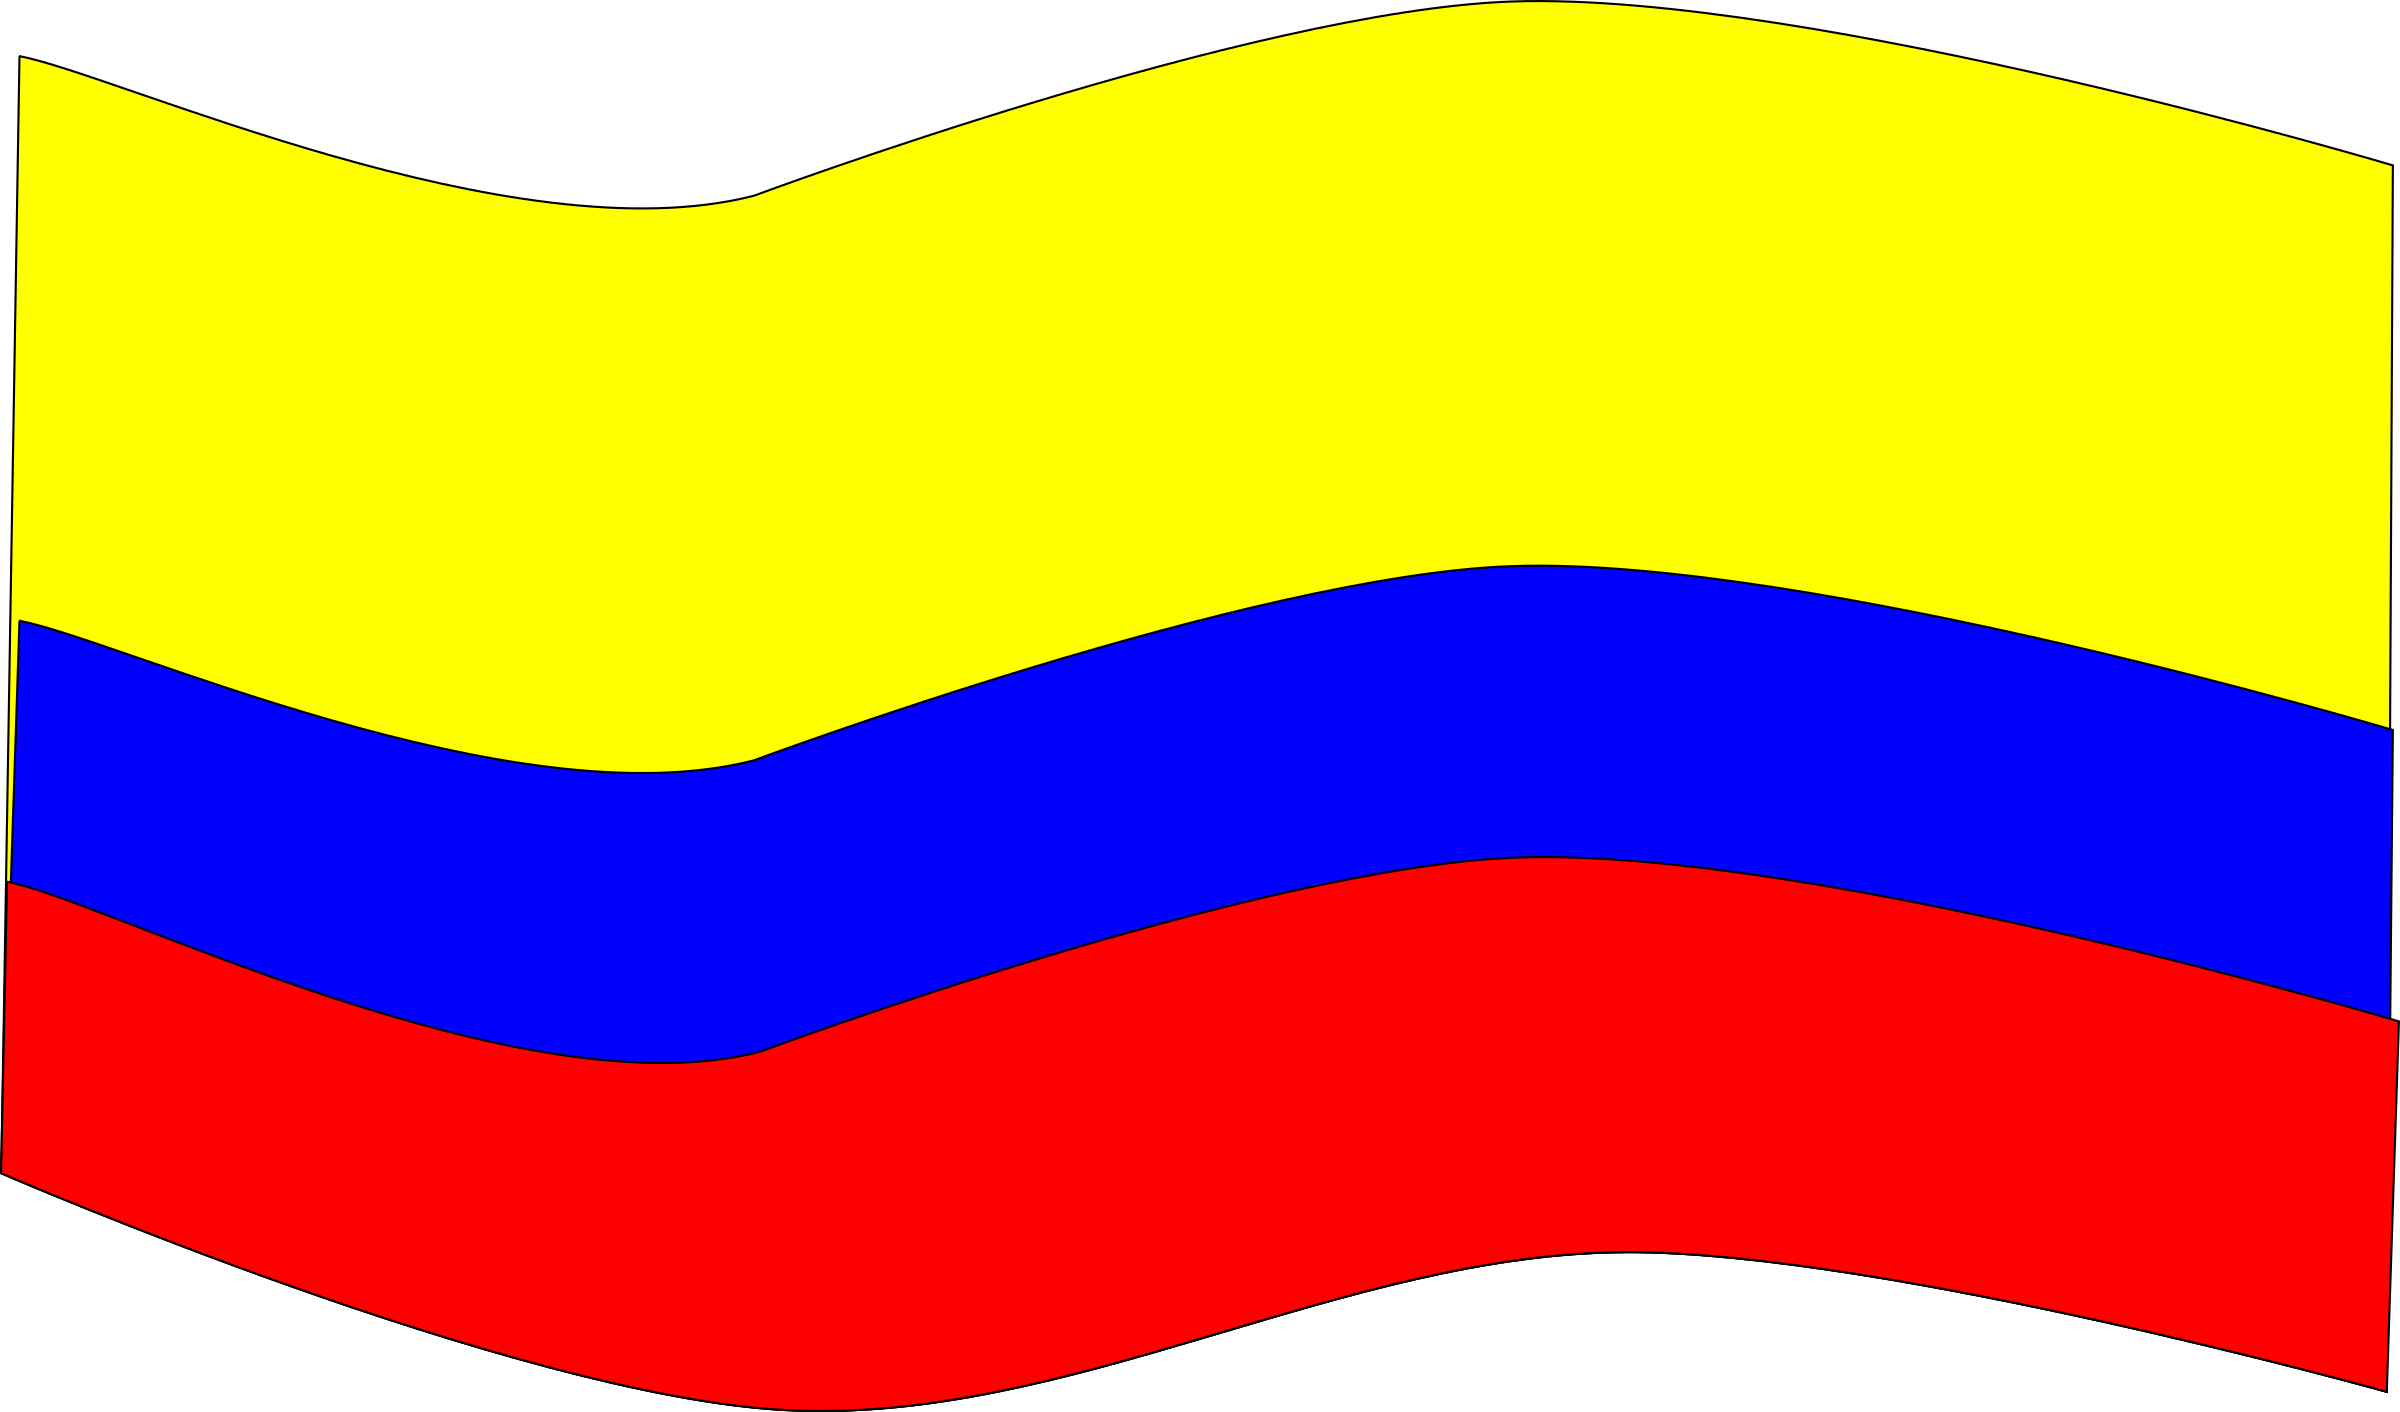 bandera colombia by german velez